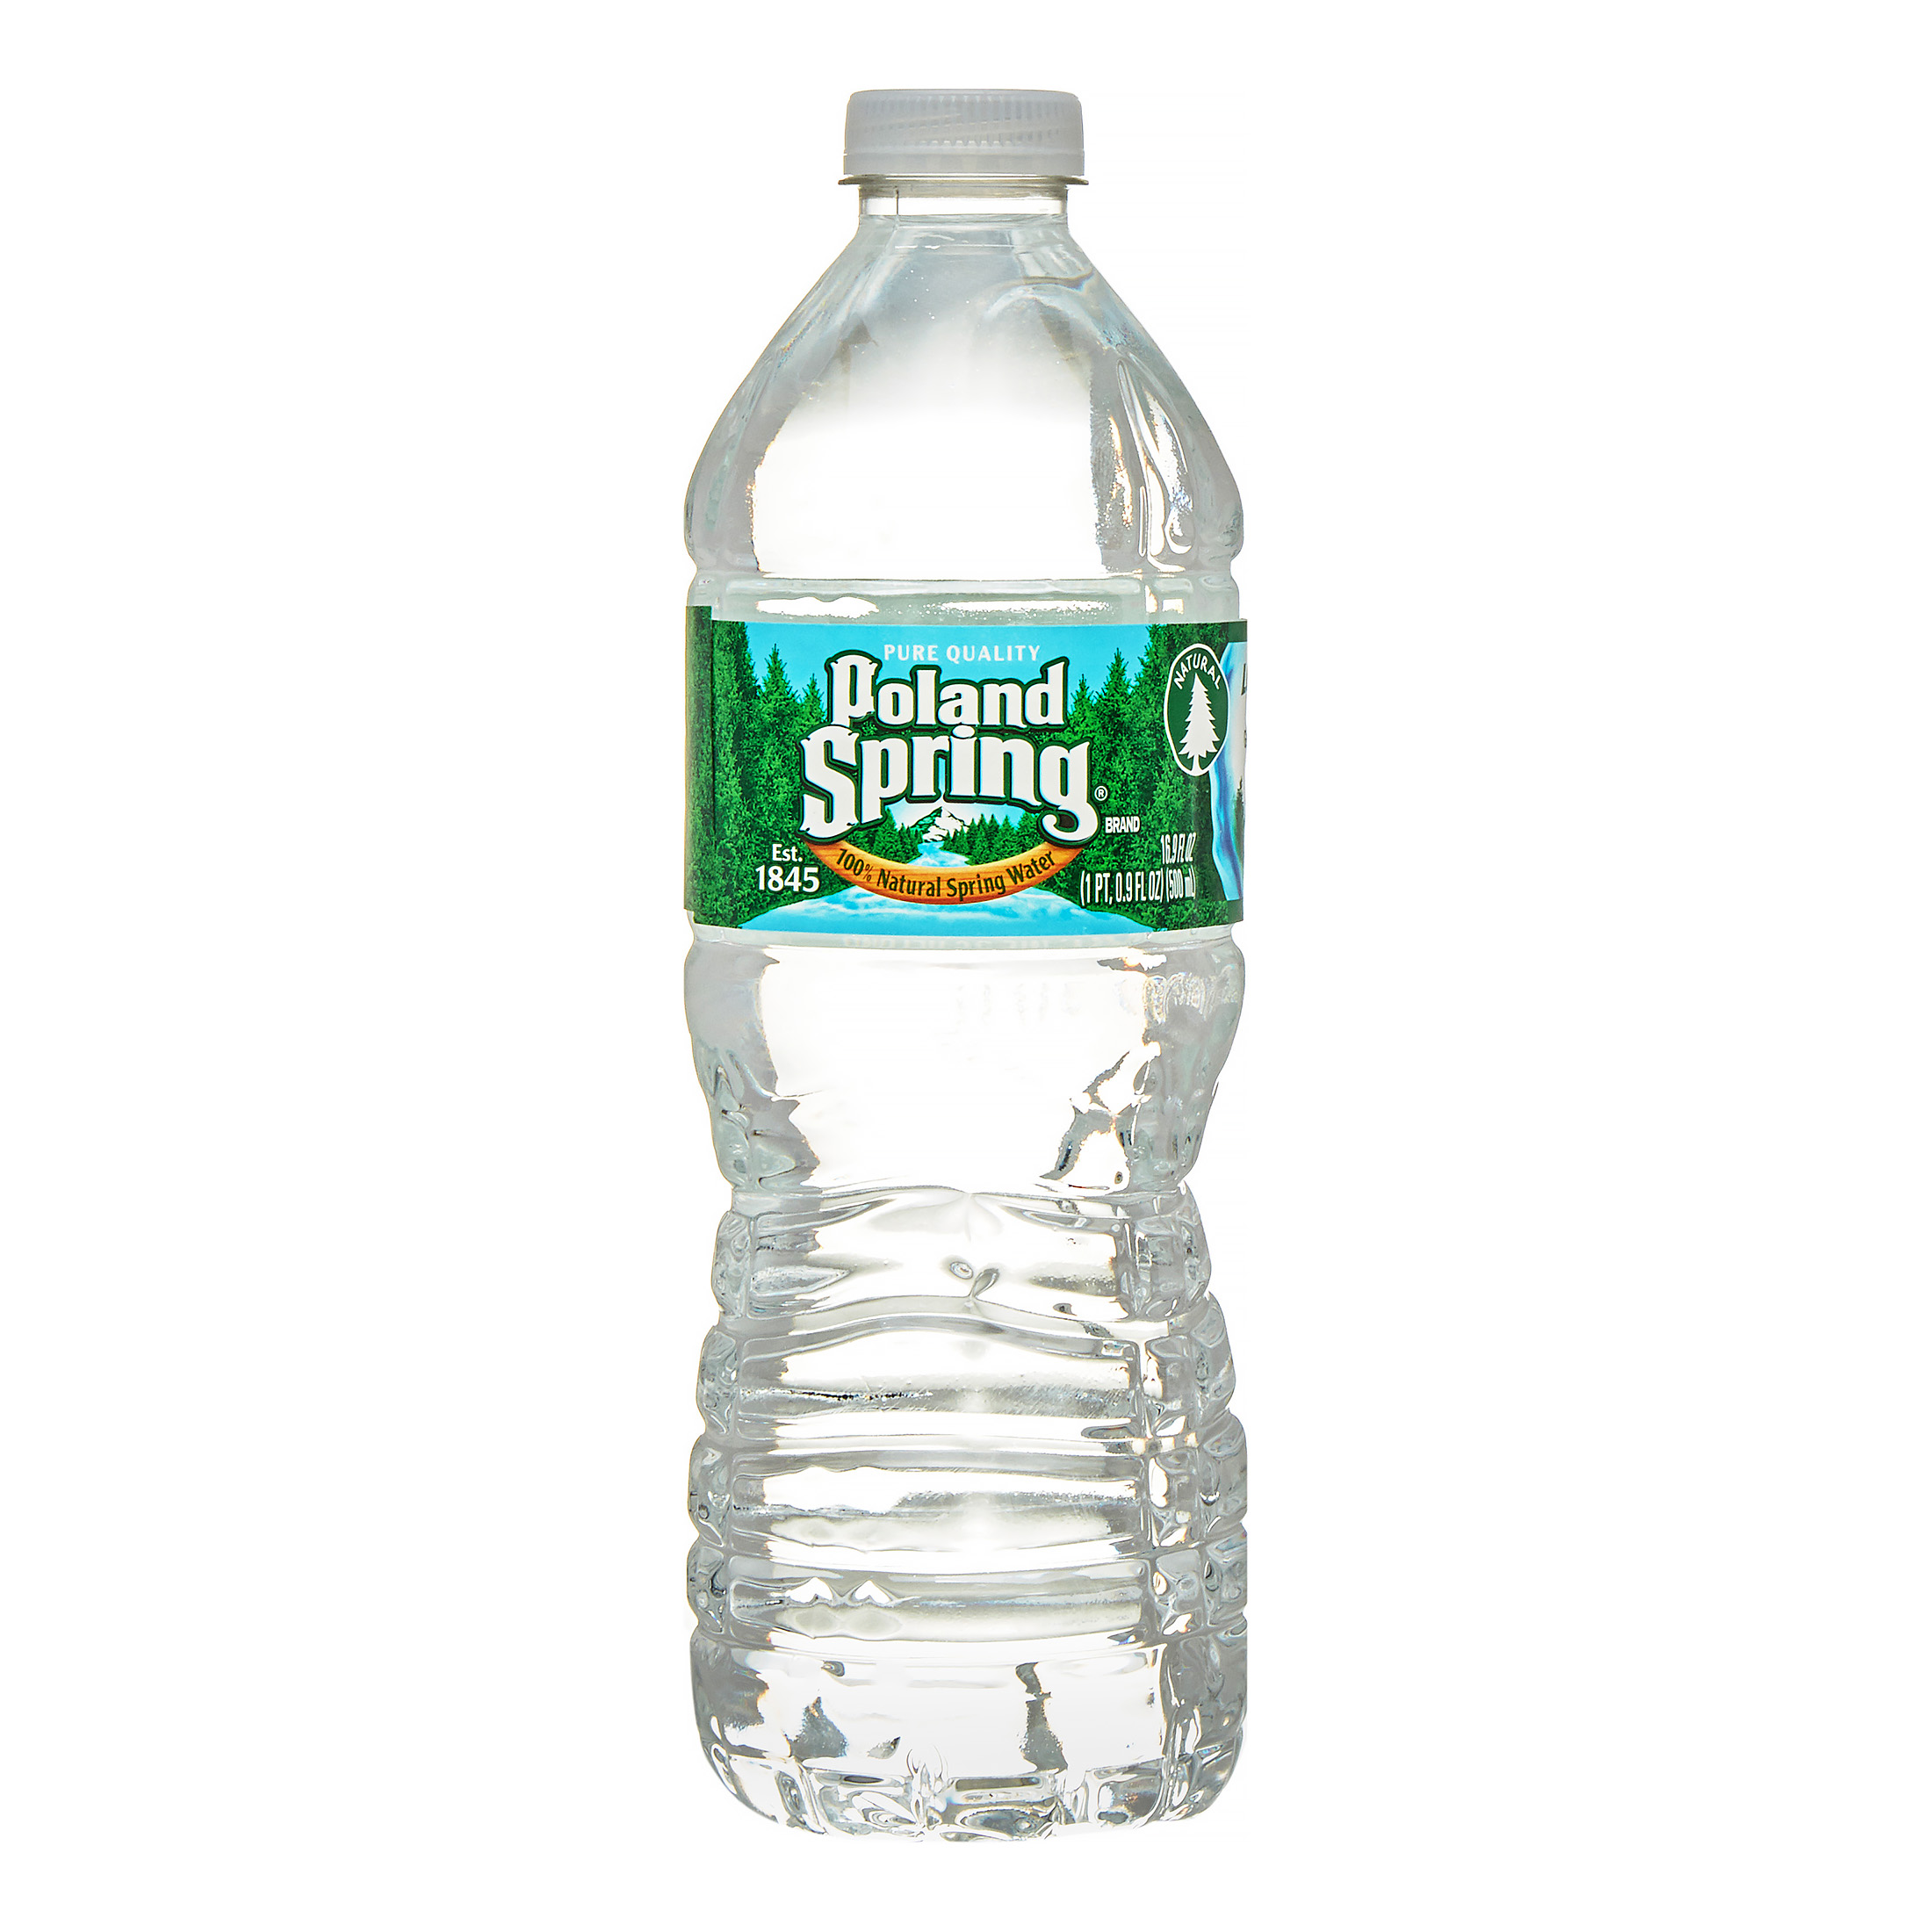 POLAND SPRING Brand 100% Natural Spring Water, 16.9-ounce plastic deposit bottles (Pack of... by Nestle Waters